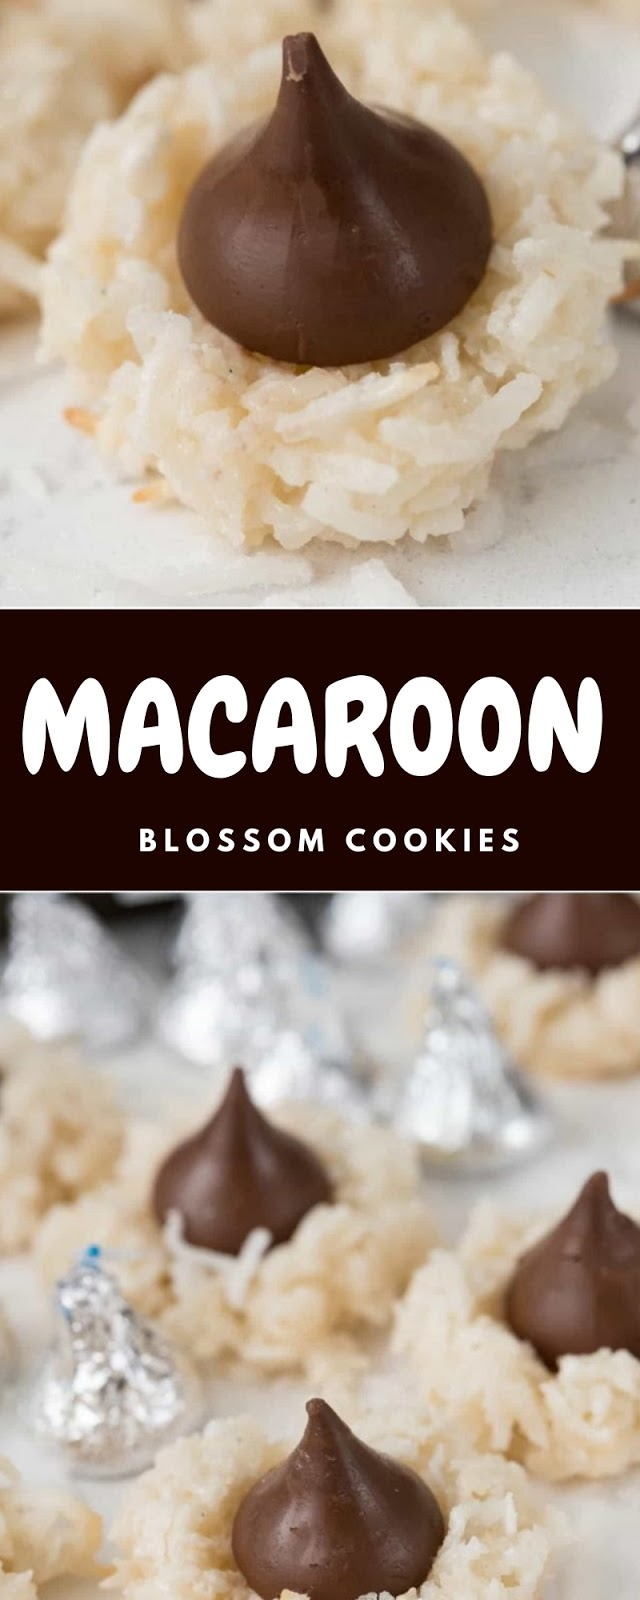 Macaroon Blossom Cookies